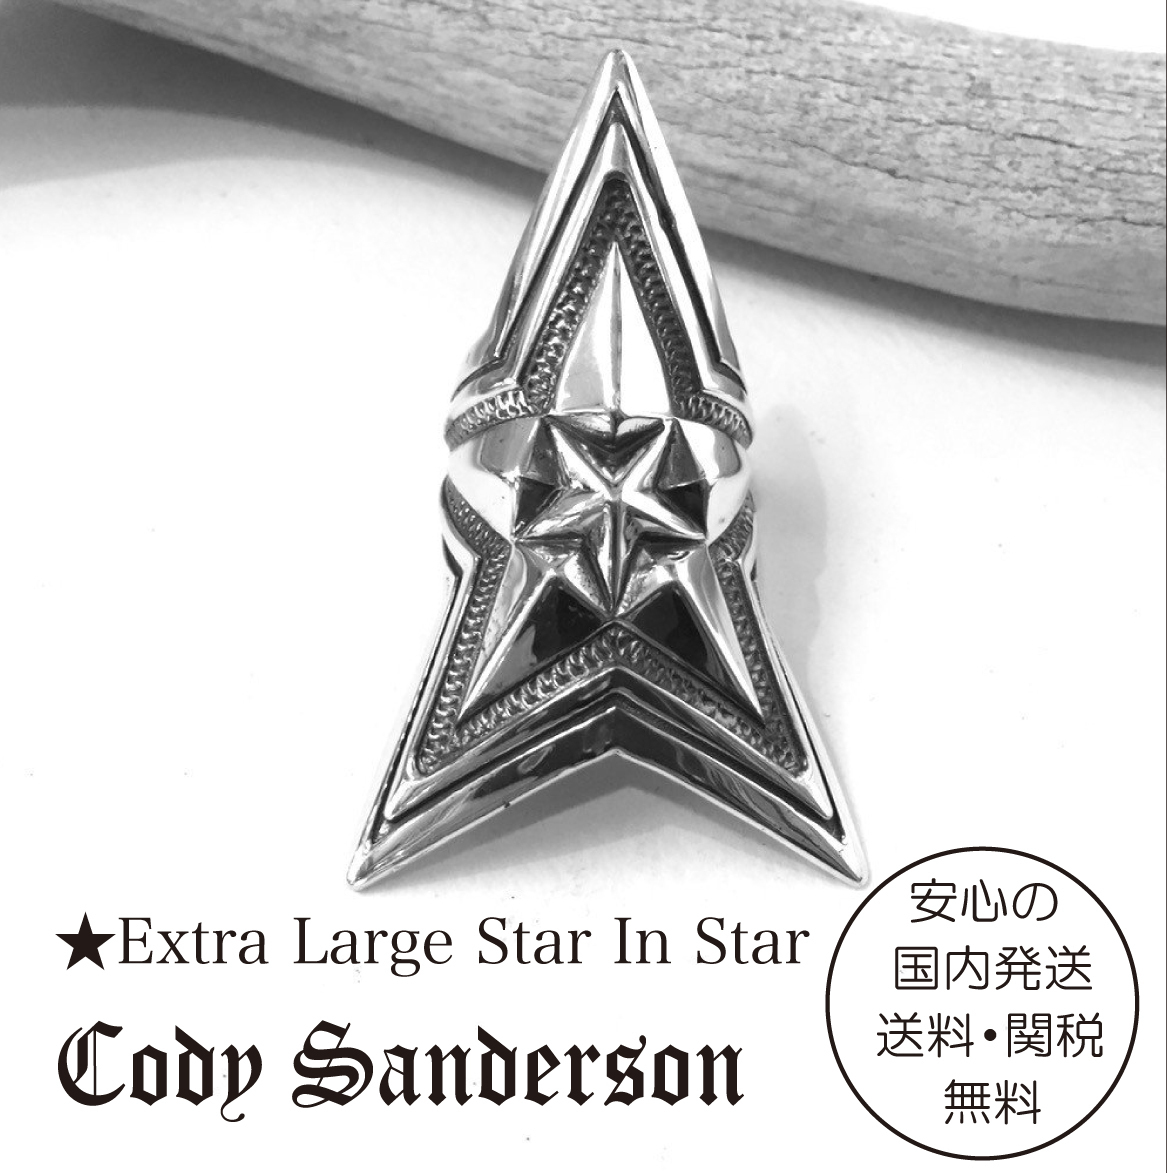 Cody Sanderson★Extra Large Star In Starr リング★クーポン付